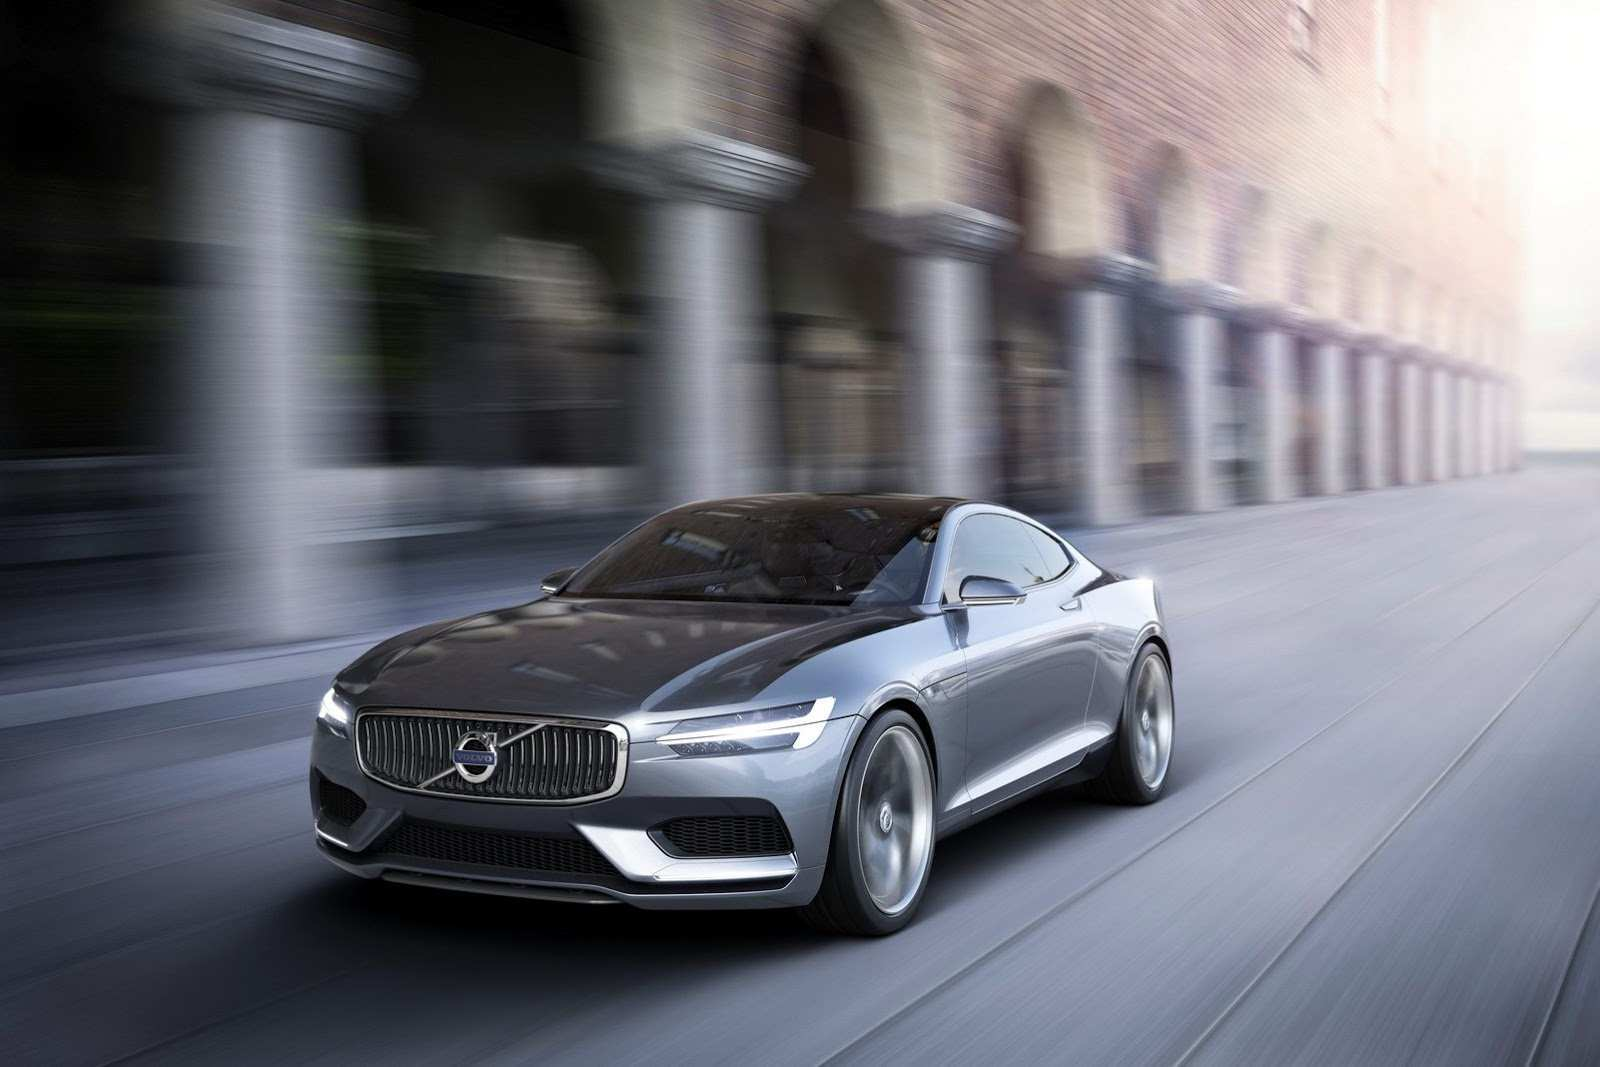 55 The Best Volvo Coupe 2019 Price And Release Date